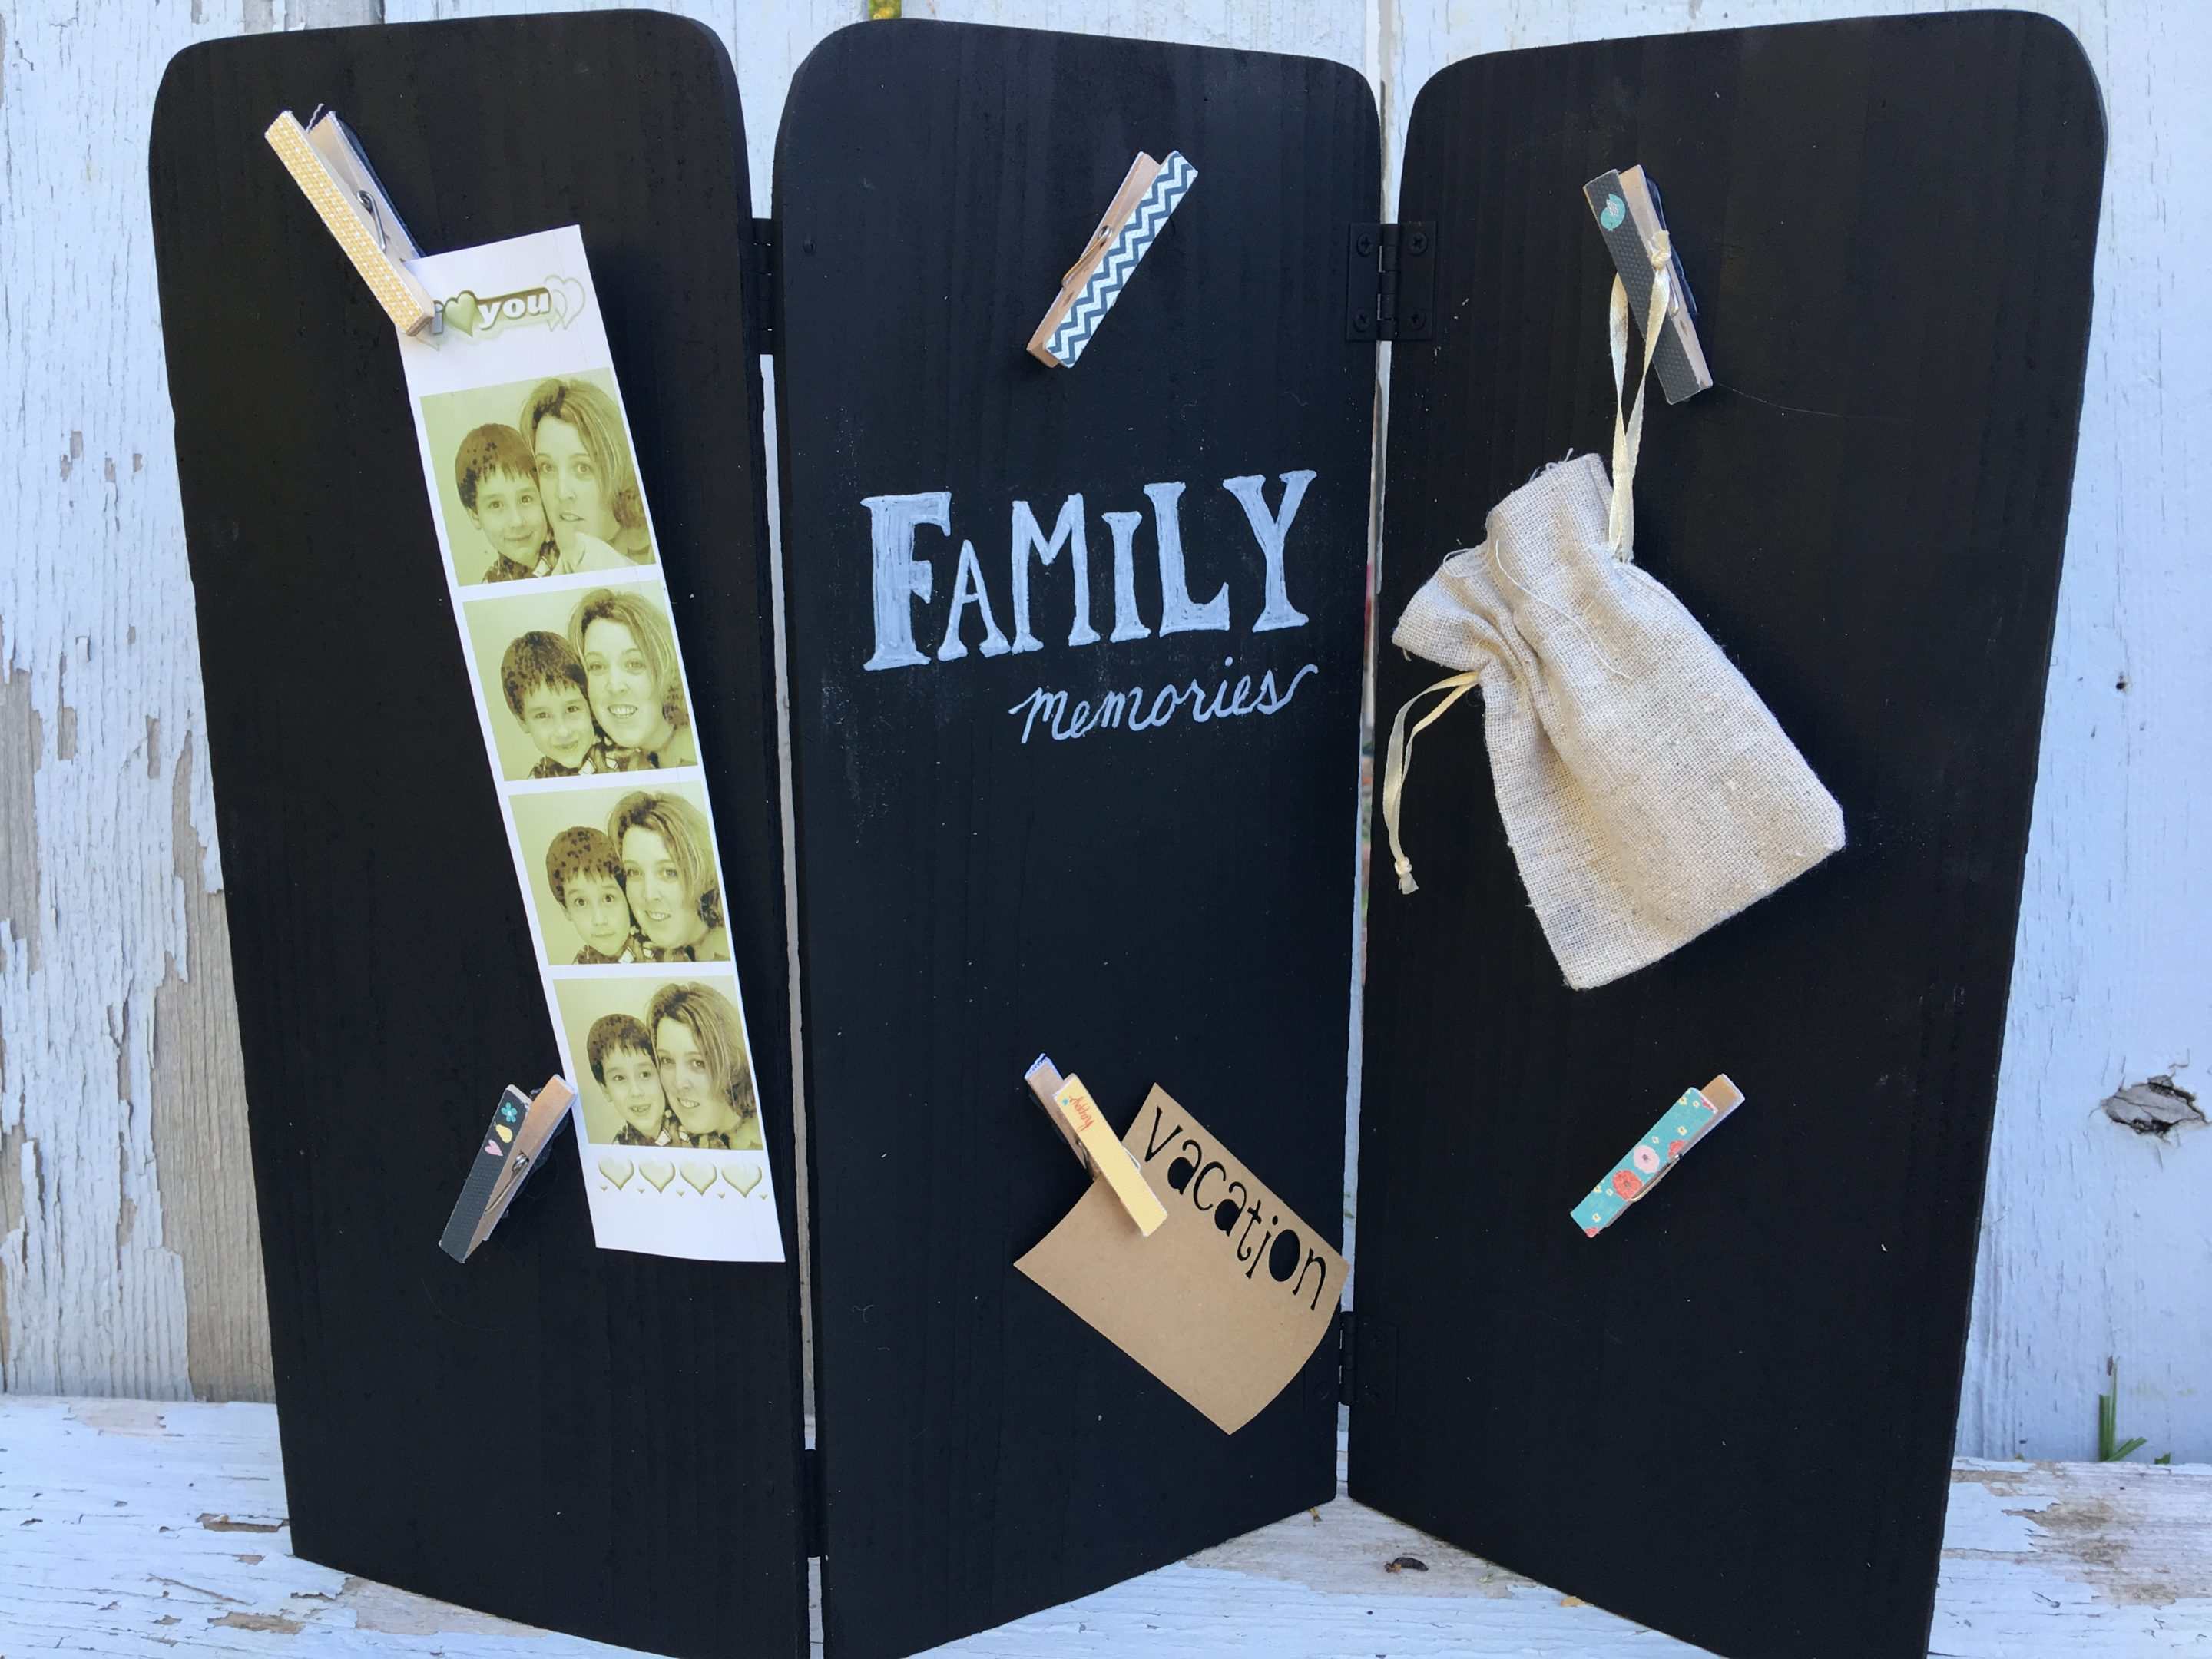 A $4 thrift store trifold screen is turned into a family memories center. You can change out pictures and memorobilia as desired. Super easy DIY project that anyone can do.